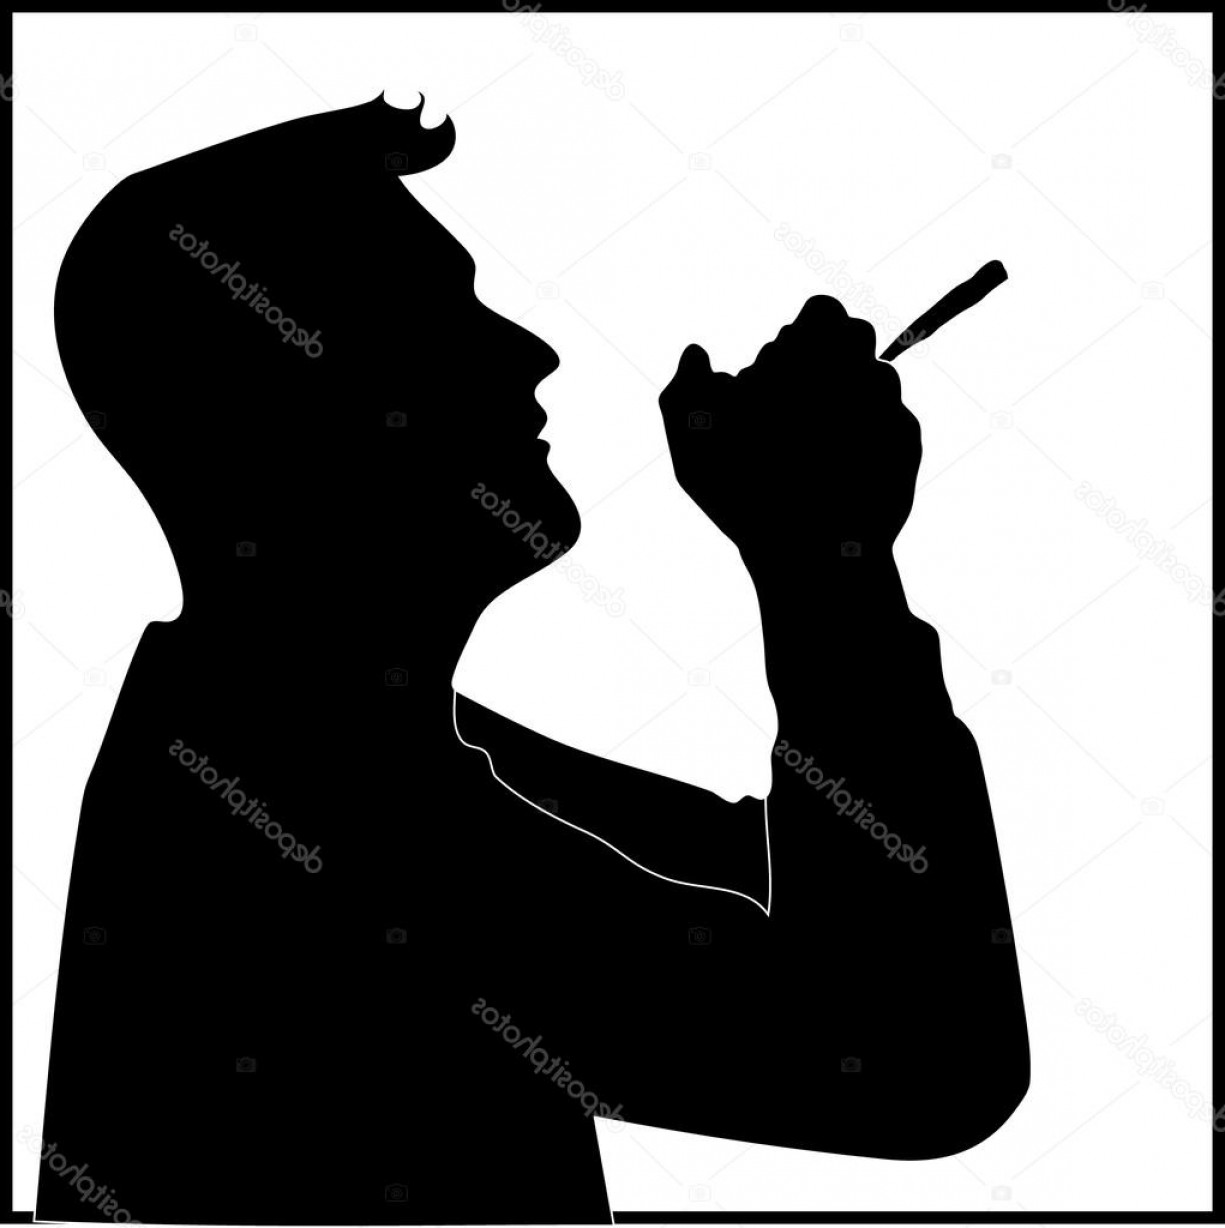 Vector Silhouette Man Smoking Marijuana: Stock Illustration Man Who Smoked Marijuana Or